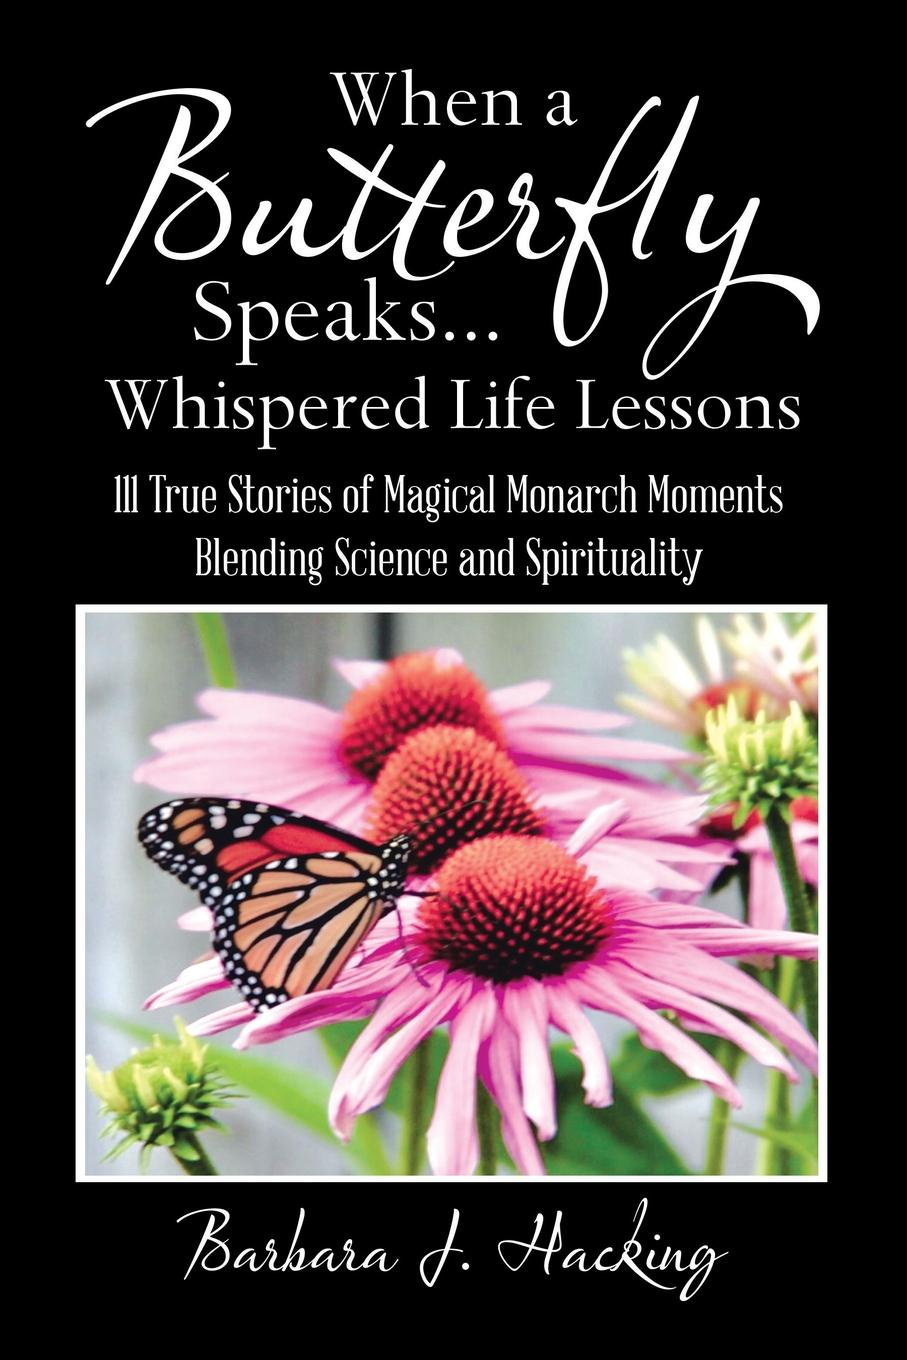 Barbara J. Hacking. When a Butterfly Speaks . . . Whispered Life Lessons. 111 True Stories of Magical Monarch Moments Blending Science and Spirituality